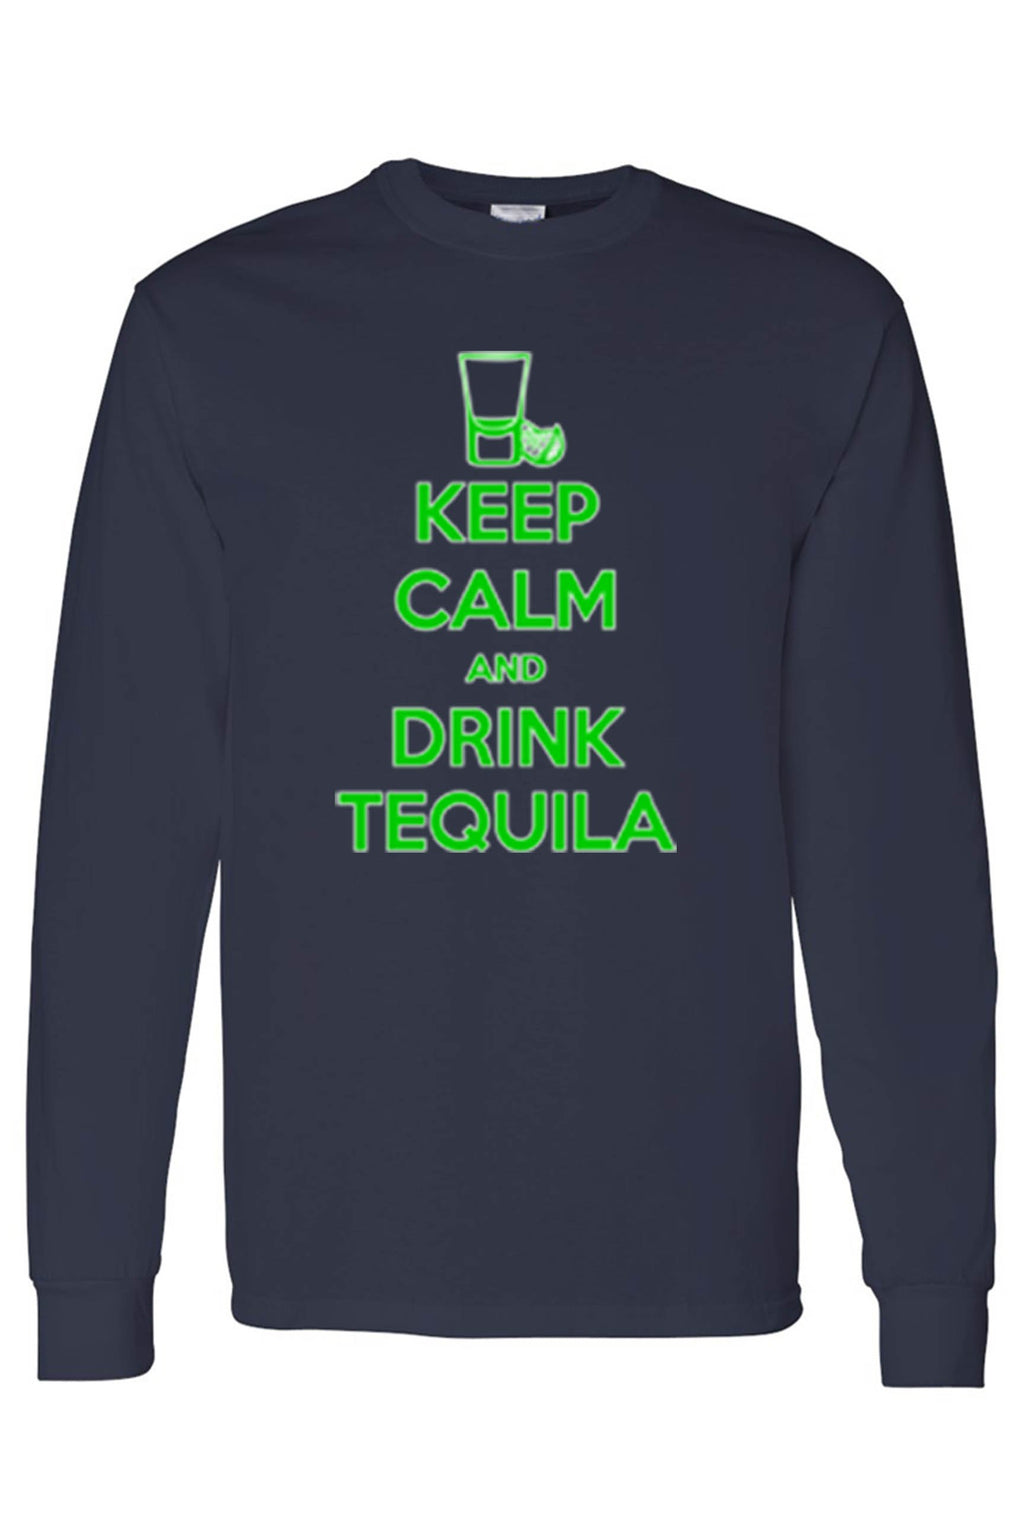 Men's/Unisex Keep Calm and Drink Tequila Long Sleeve shirt